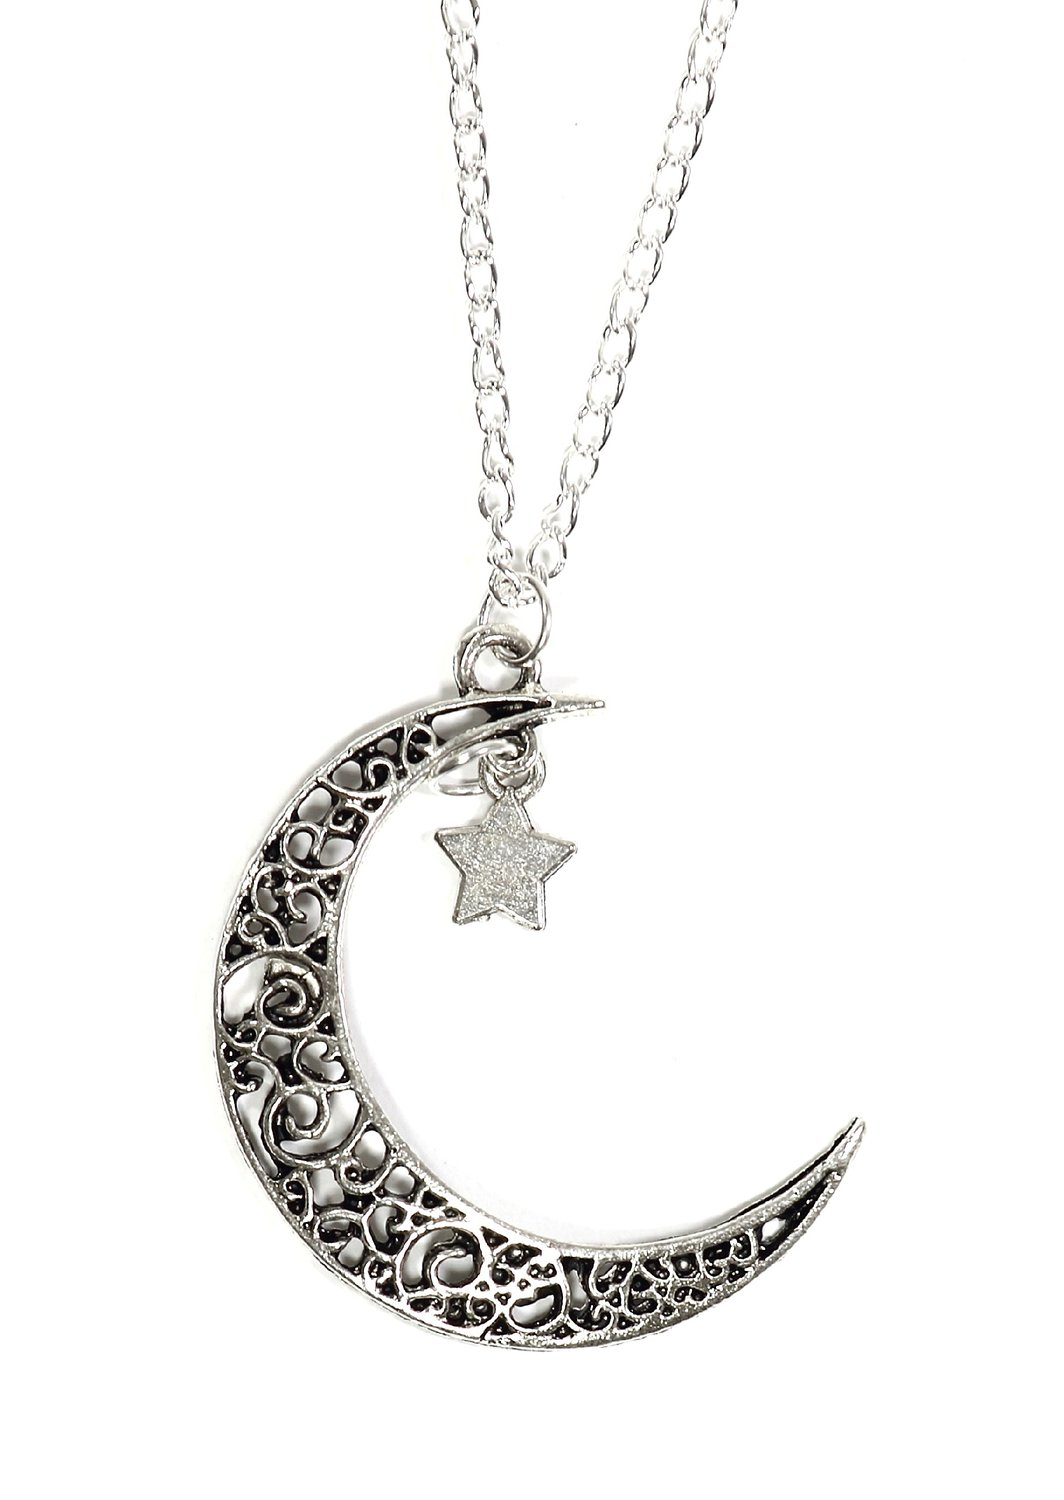 Com crescent moon star necklace vintage silver tone lunar amazon crescent moon star necklace vintage silver tone lunar filigree pendant np16 fashion jewelry jewelry mozeypictures Gallery